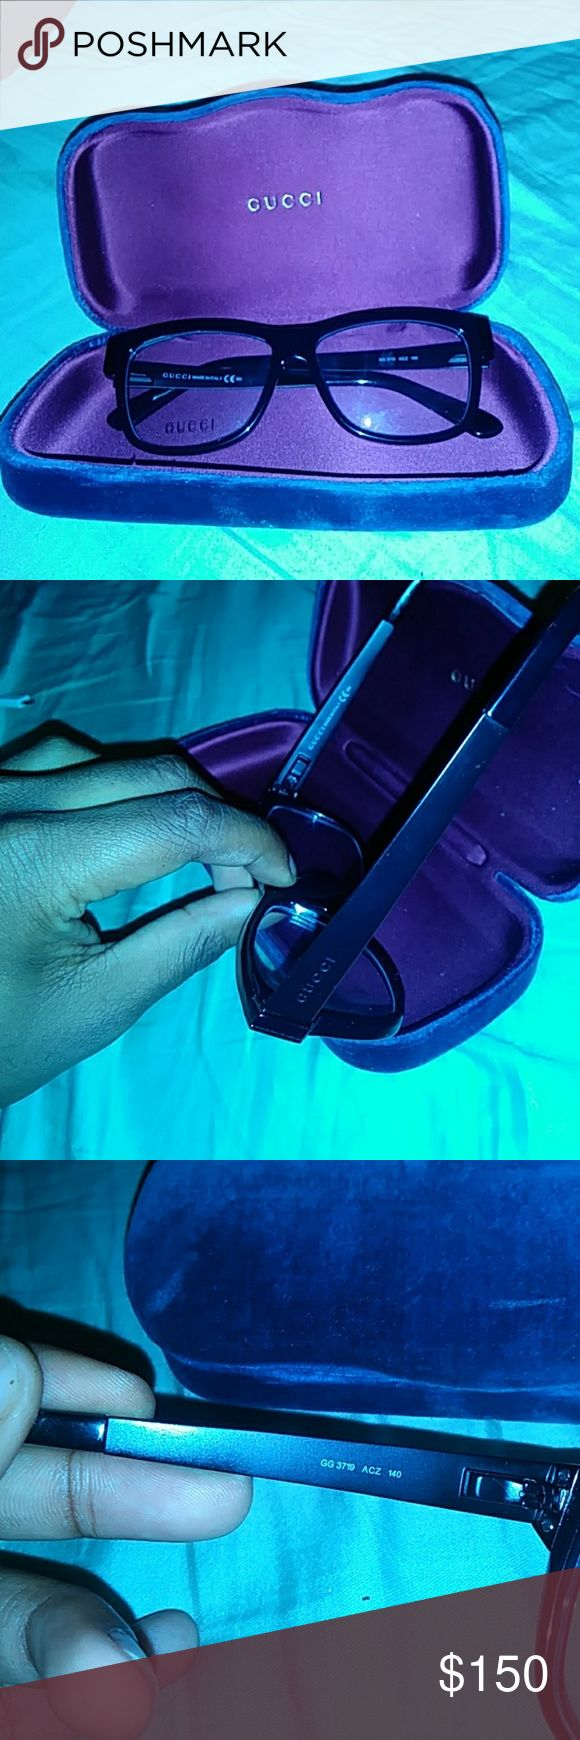 Gucci Eyeglasses Authentic Gucci Eyeglasses with Blue Velvet Gucci glasses case! Asking price is negotiable. Gucci Accessories Glasses